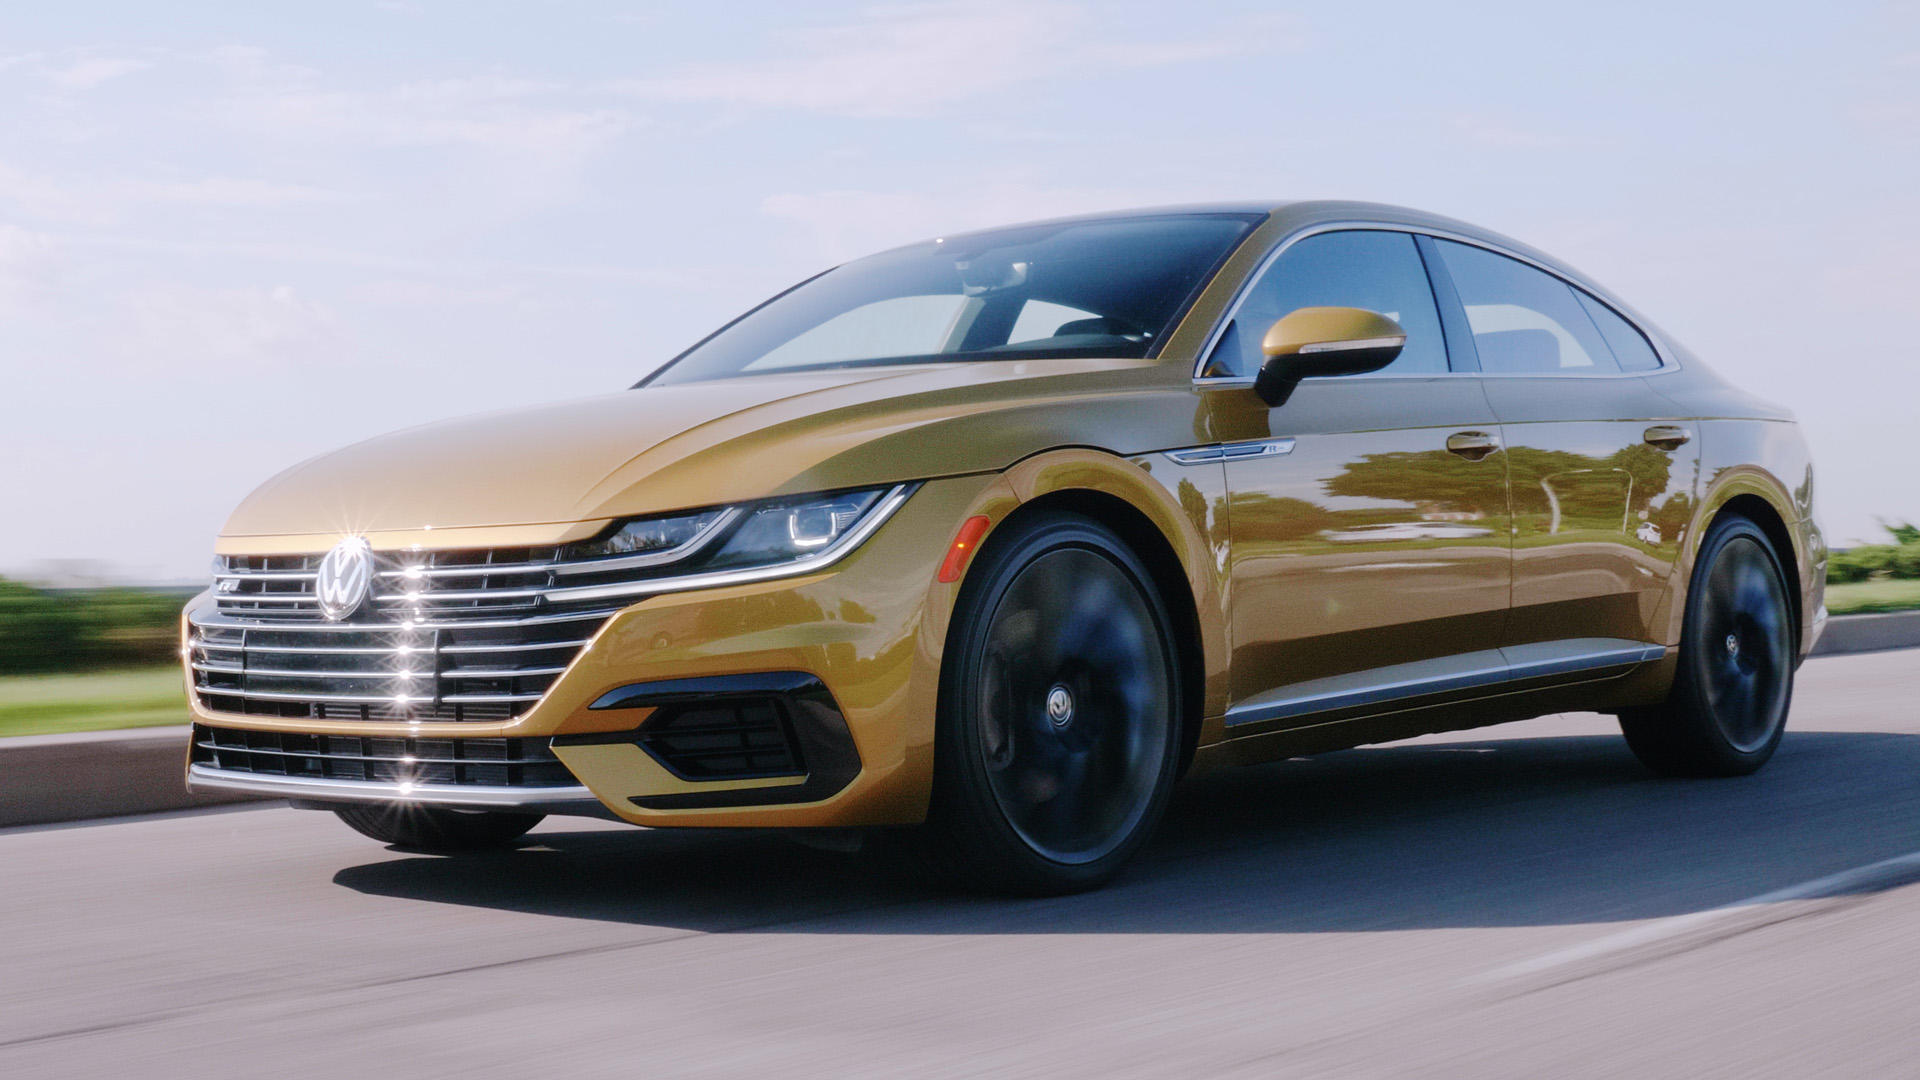 Video: 2019 Volkswagen Arteon Review: A serious luxury bargain